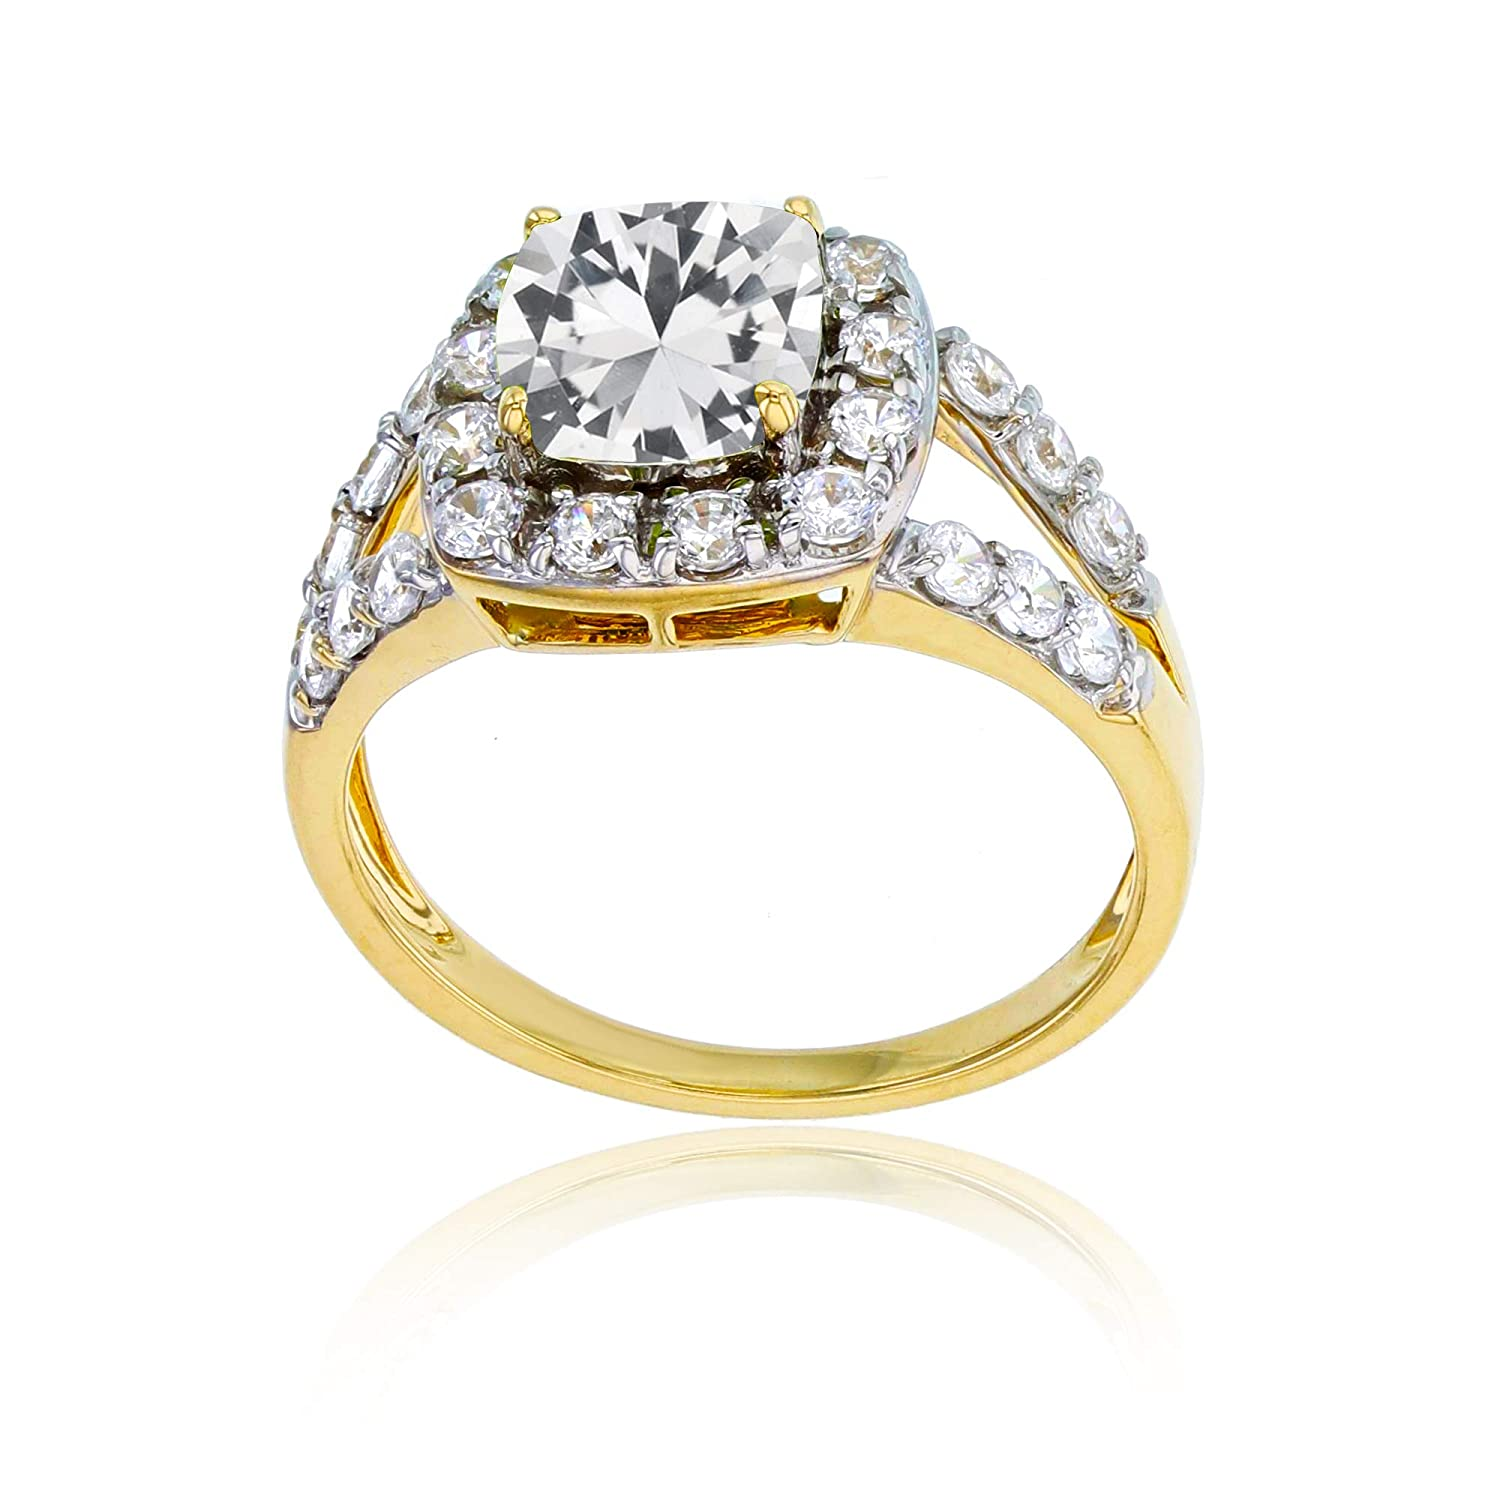 Sterling Silver Yellow 7mm Cushion Gemstone /& 2mm Round Created White Sapphire Ring Decadence SSR7596Y6W-07